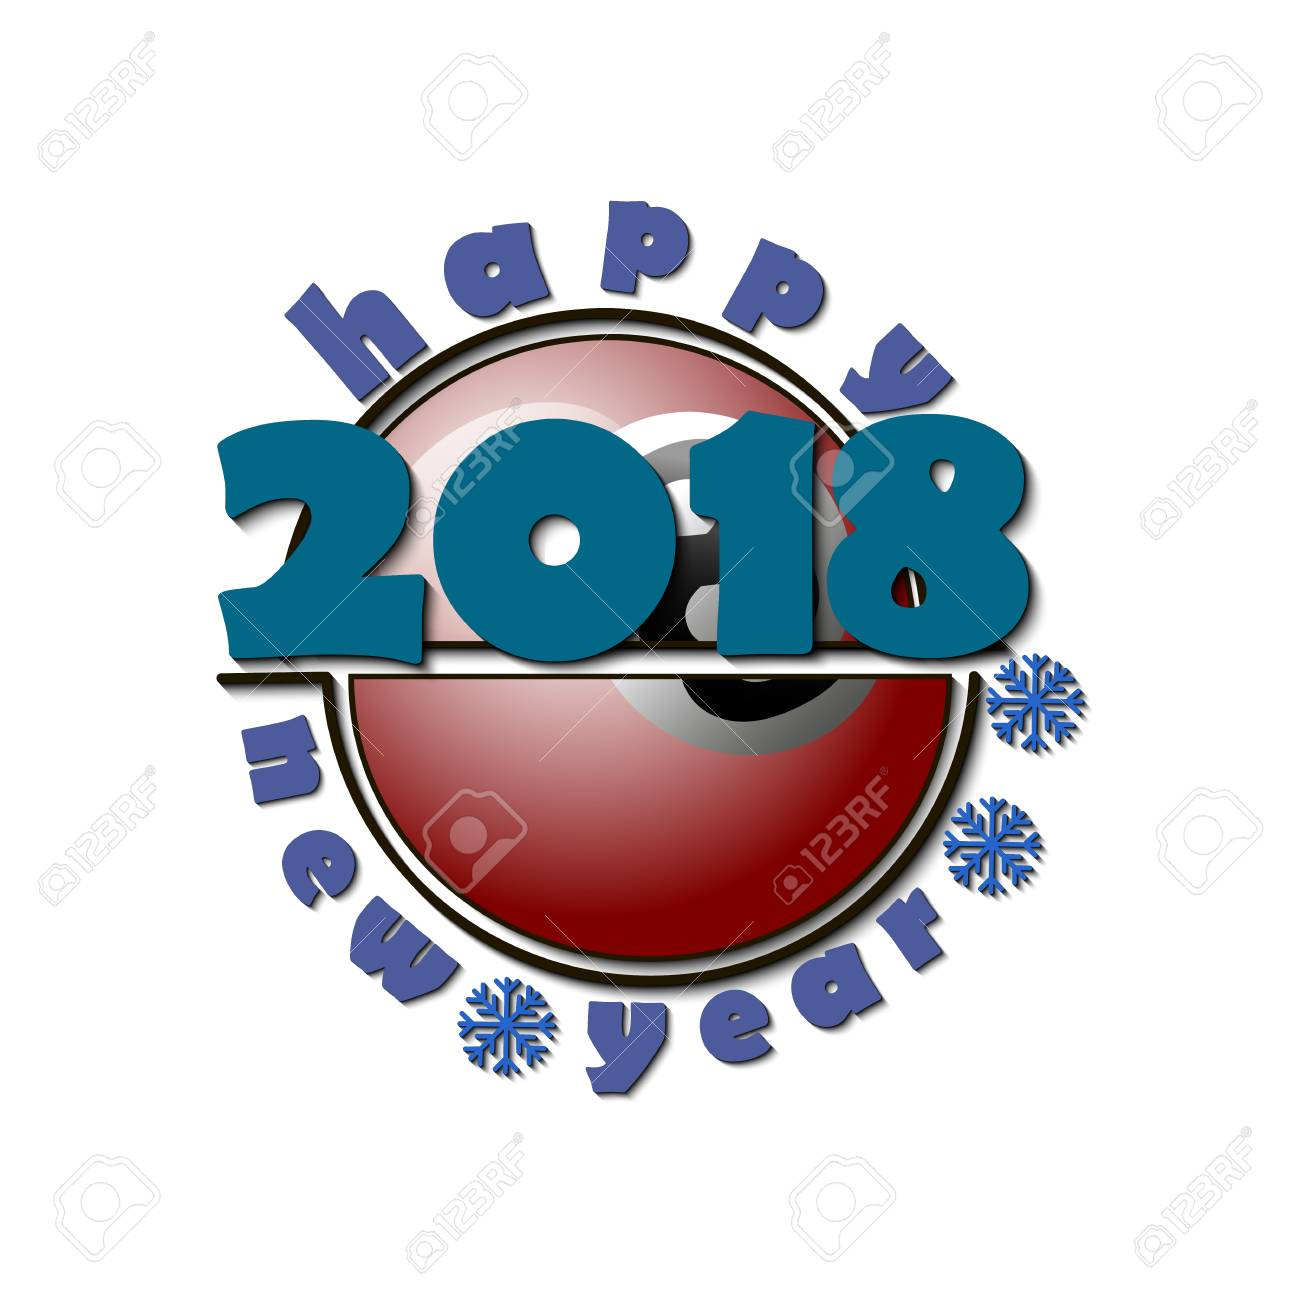 1300x1300 Billiard Ball And A Happy New Year 2018. Vector Illustration